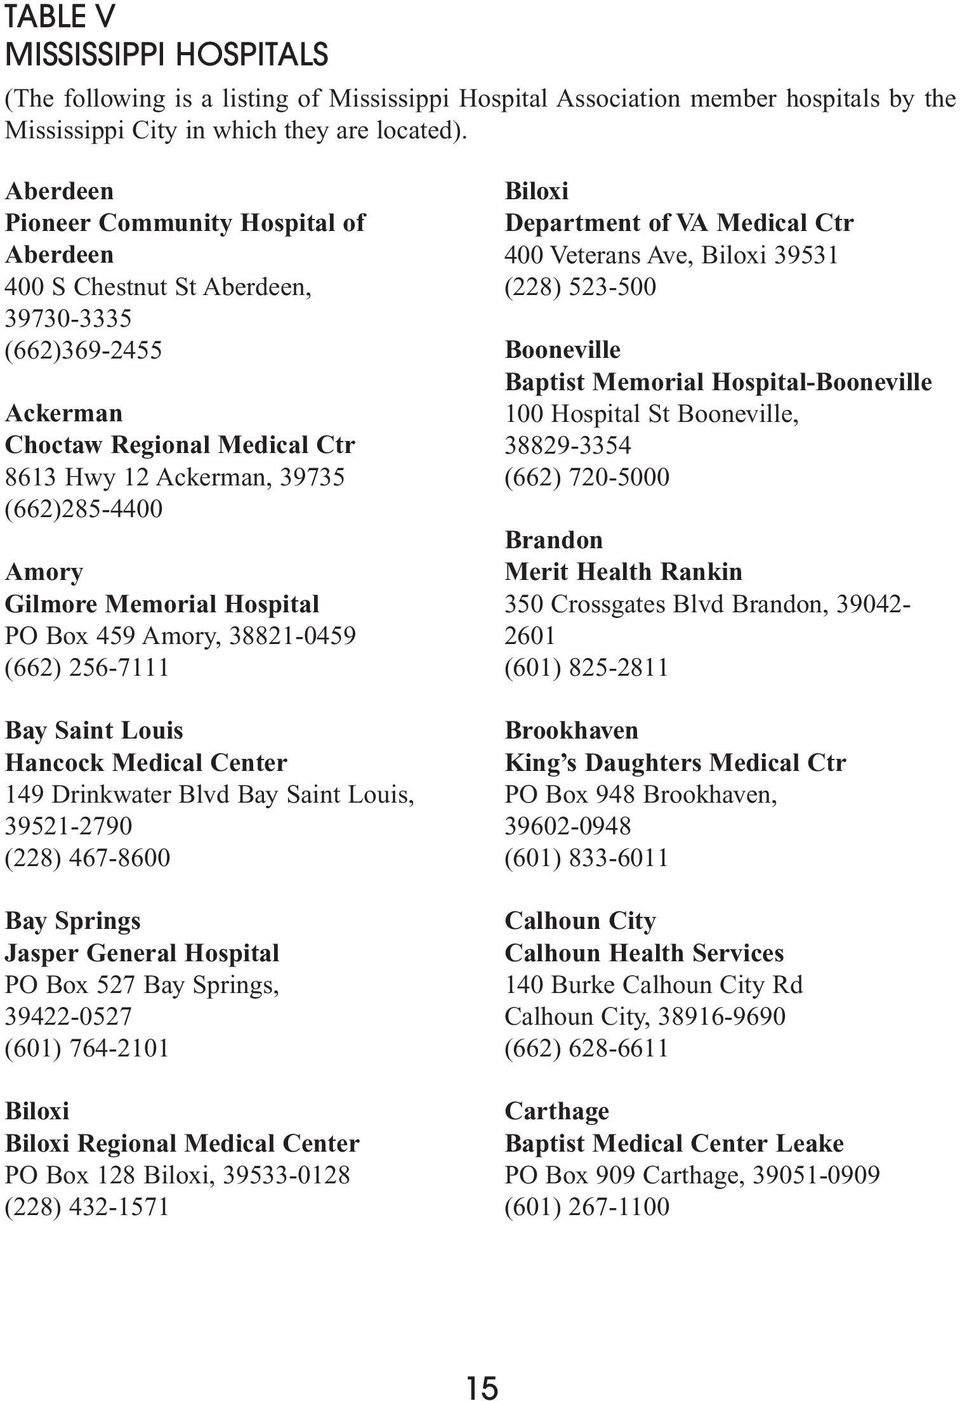 Memorial Hospital PO Box 459 Amory, 38821-0459 (662) 256-7111 Bay Saint Louis Hancock Medical Center 149 Drinkwater Blvd Bay Saint Louis, 39521-2790 (228) 467-8600 Bay Springs Jasper General Hospital